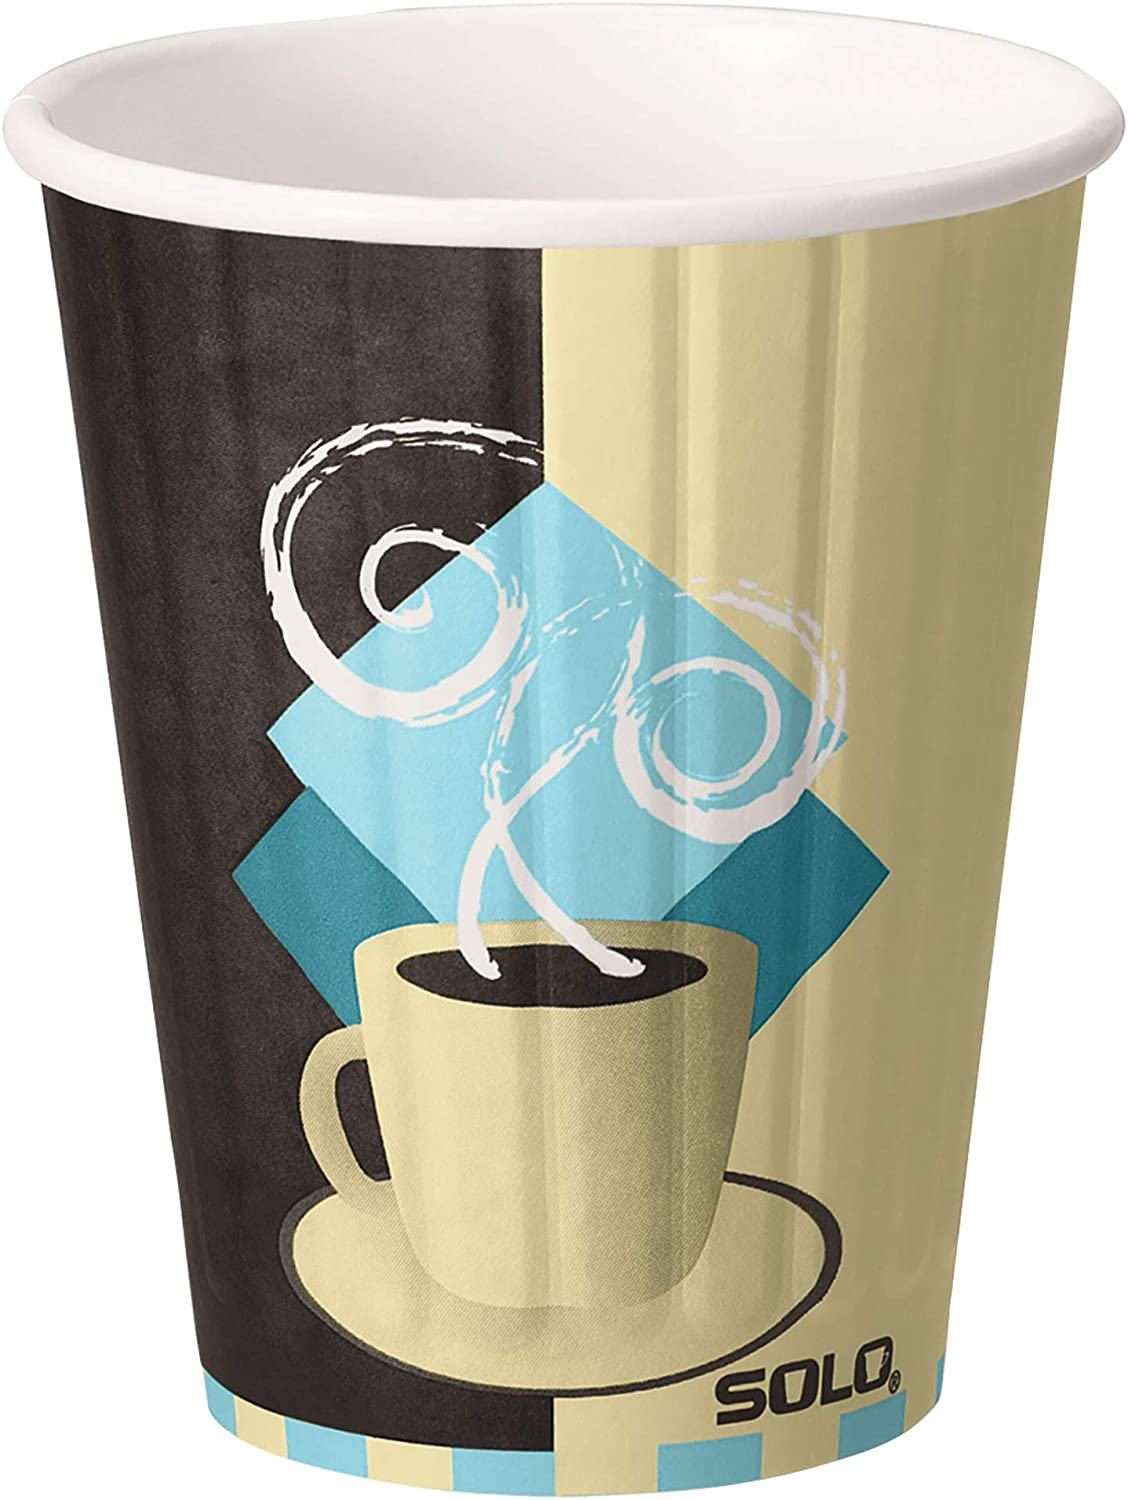 Solo IC12-J7534 12 oz Tuscan Cafe Duo Shield insulated Paper Hot Cup (Case of 600)